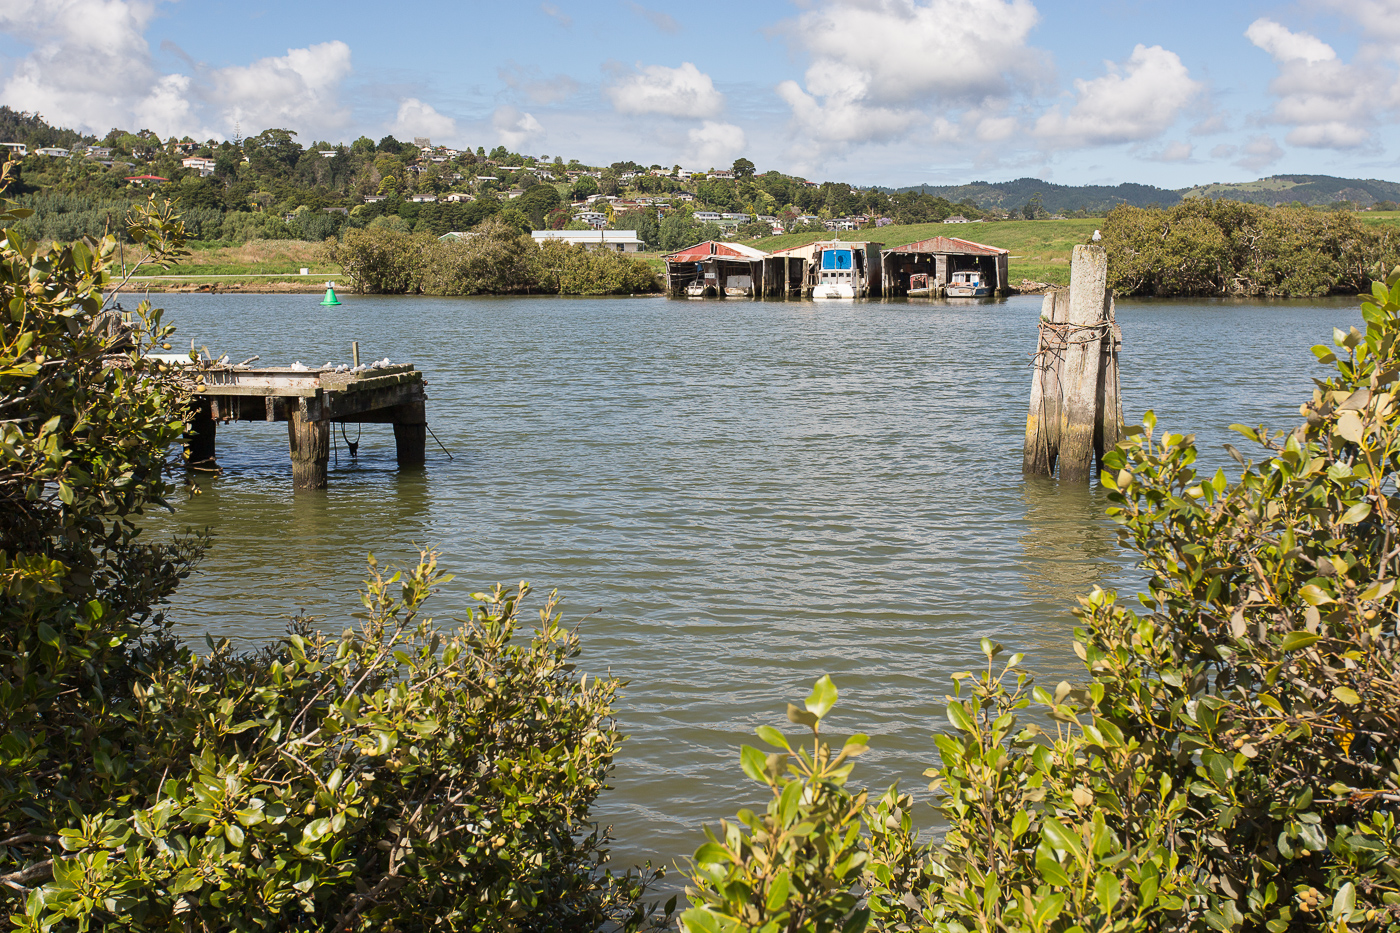 Mangroves and boatsheds